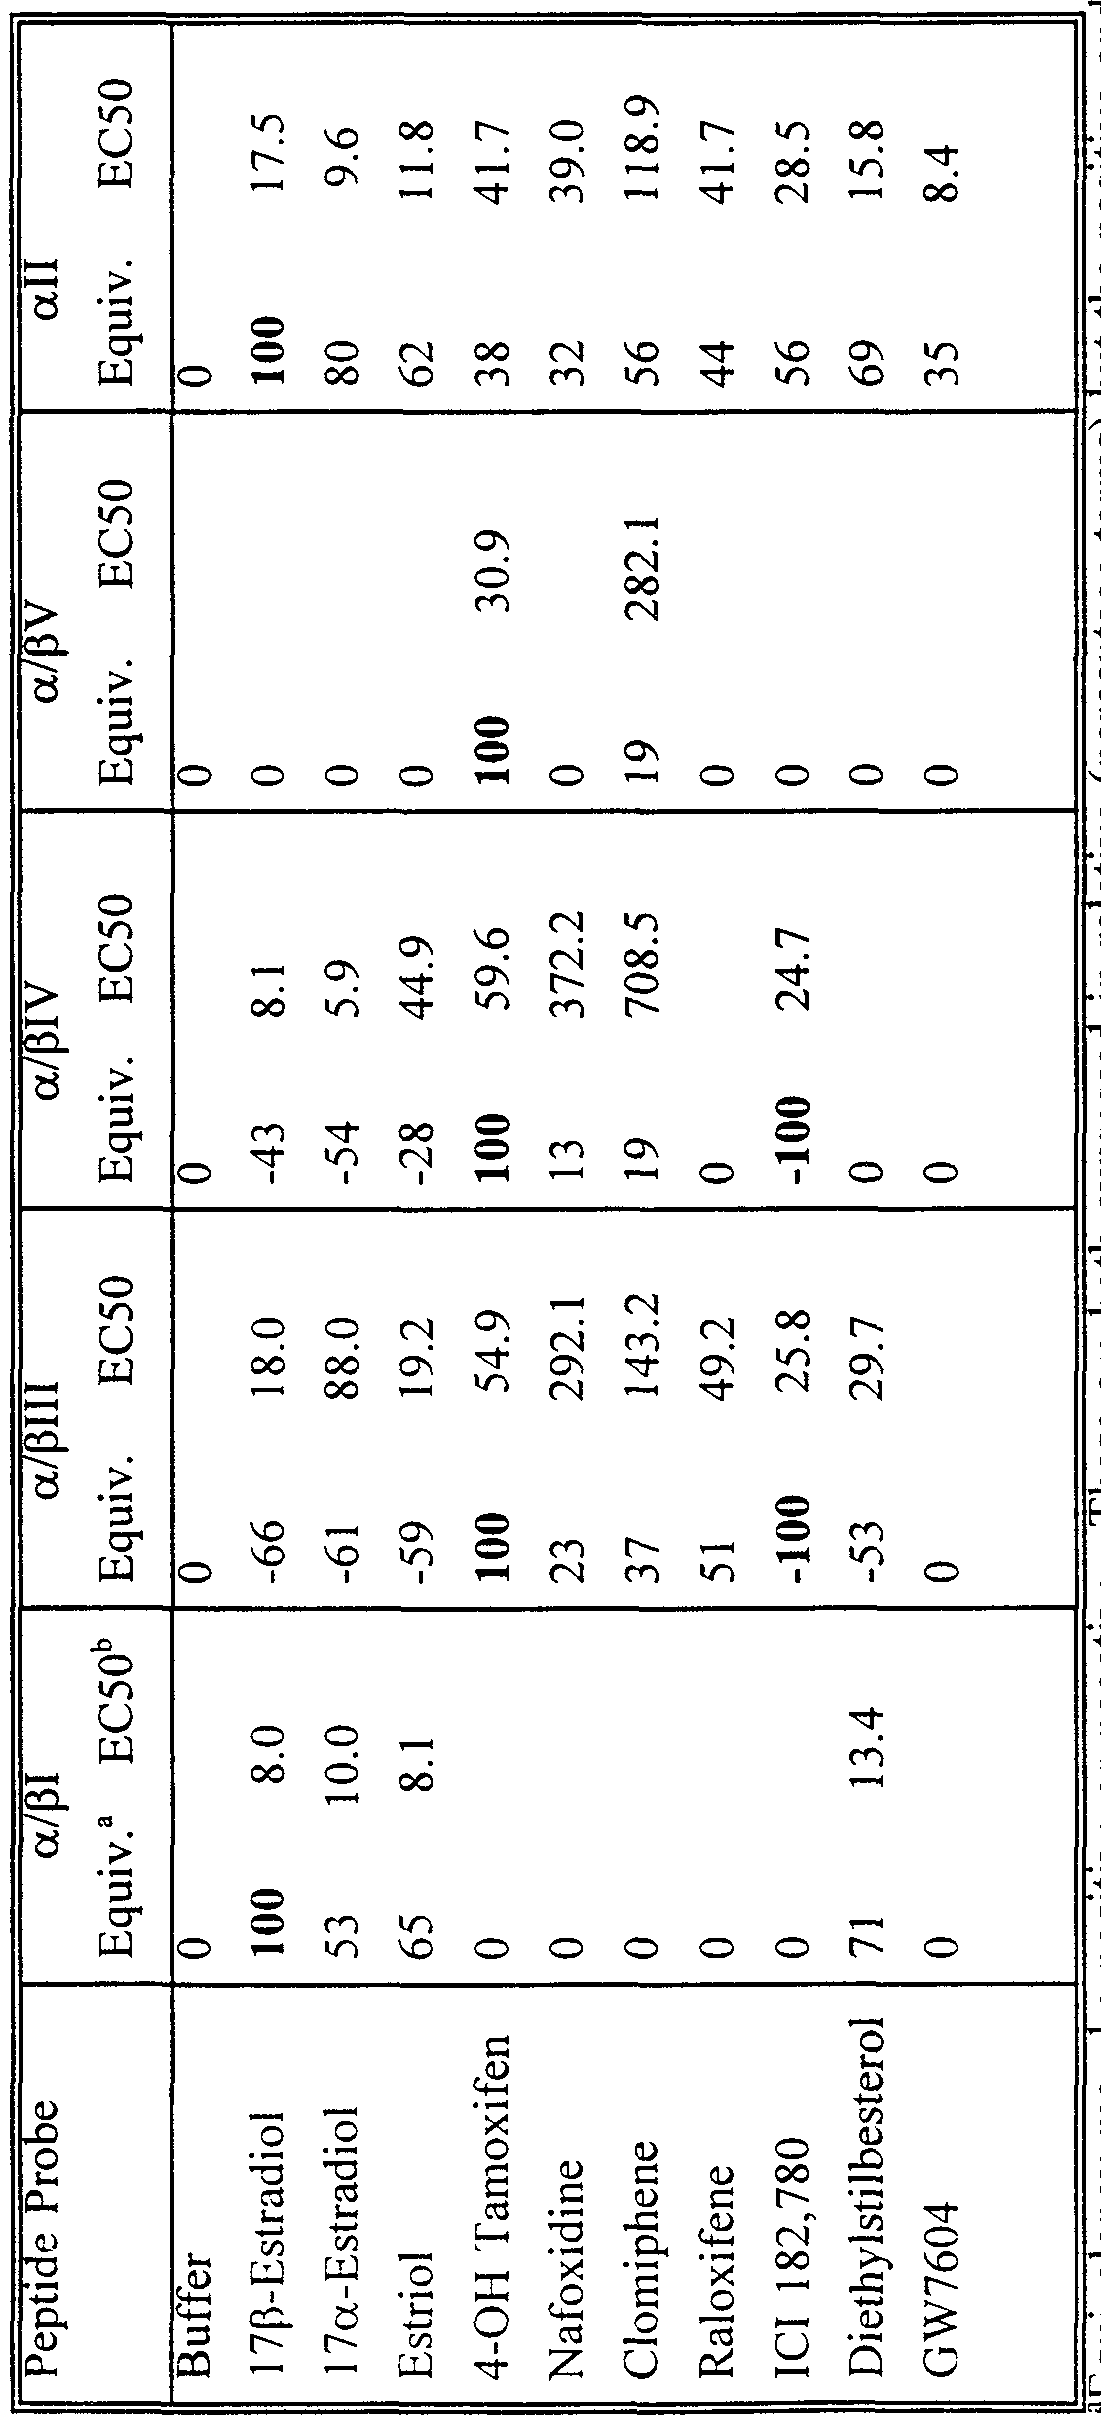 Wo1999054728a2 Method Of Predicting Receptor Modulating Activity Cotton Bud Refill Isi 80 Kode 188 Figure Imgf000180 0001